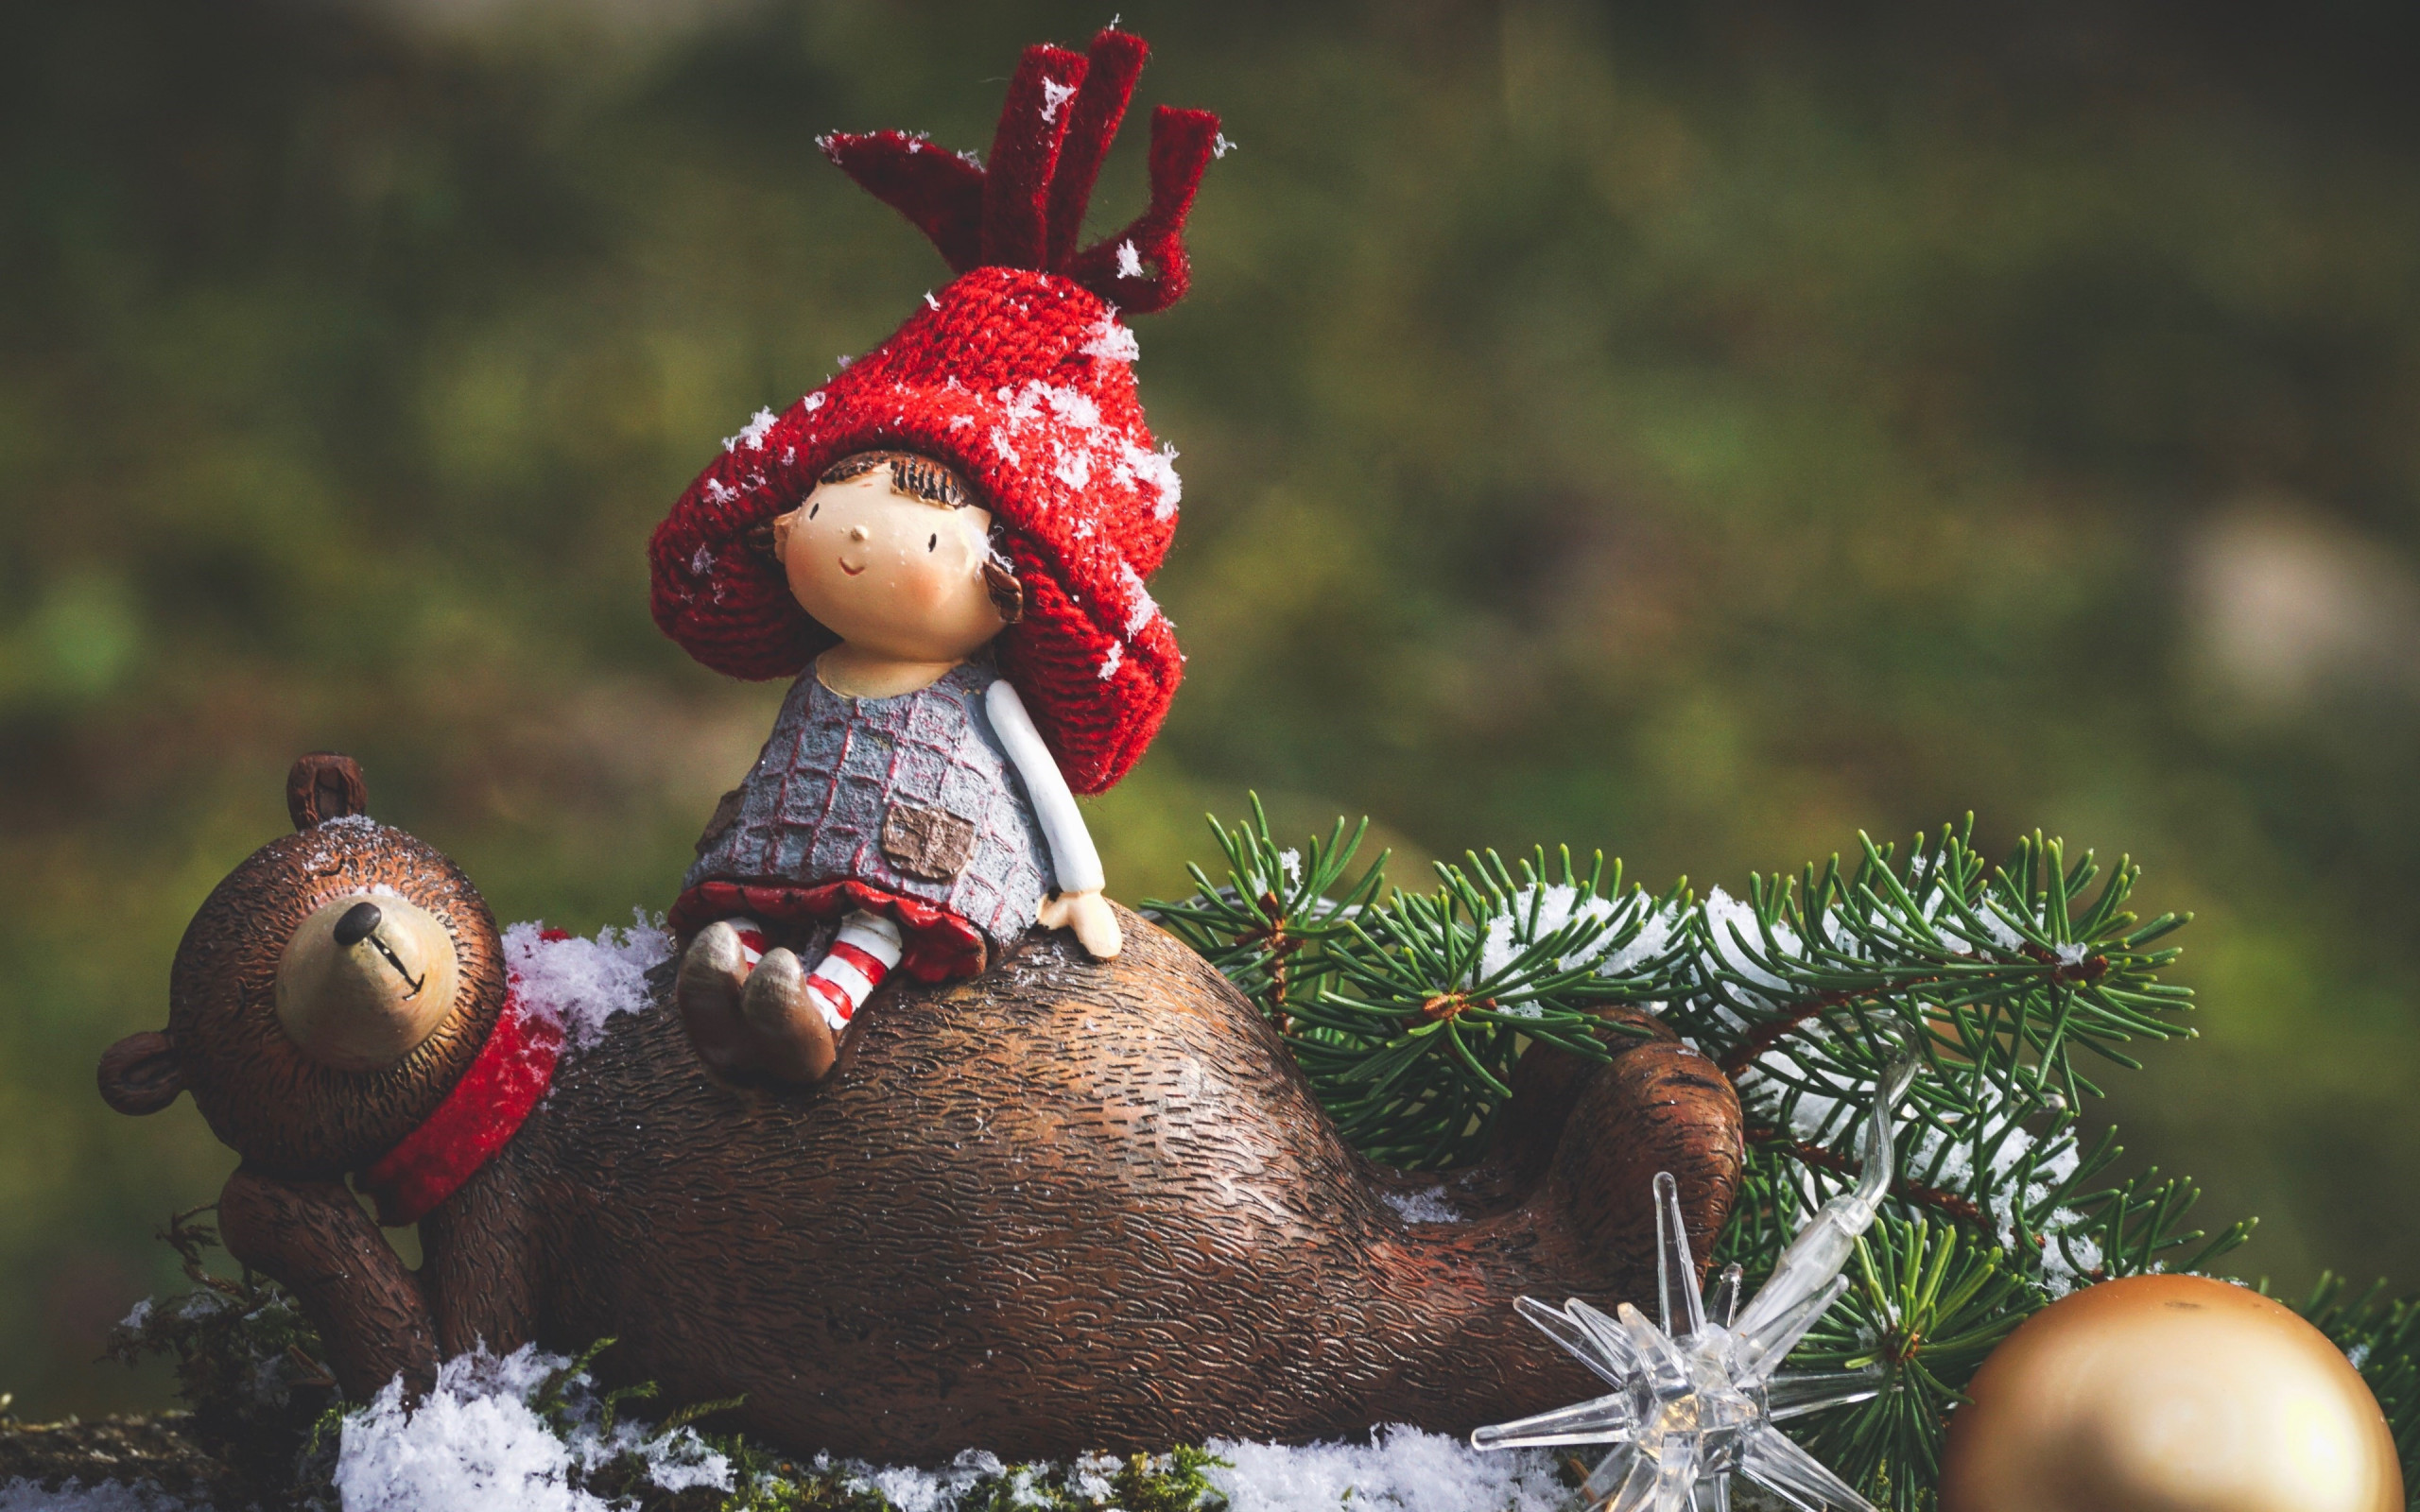 Cute Christmas decoration wallpaper 2560x1600